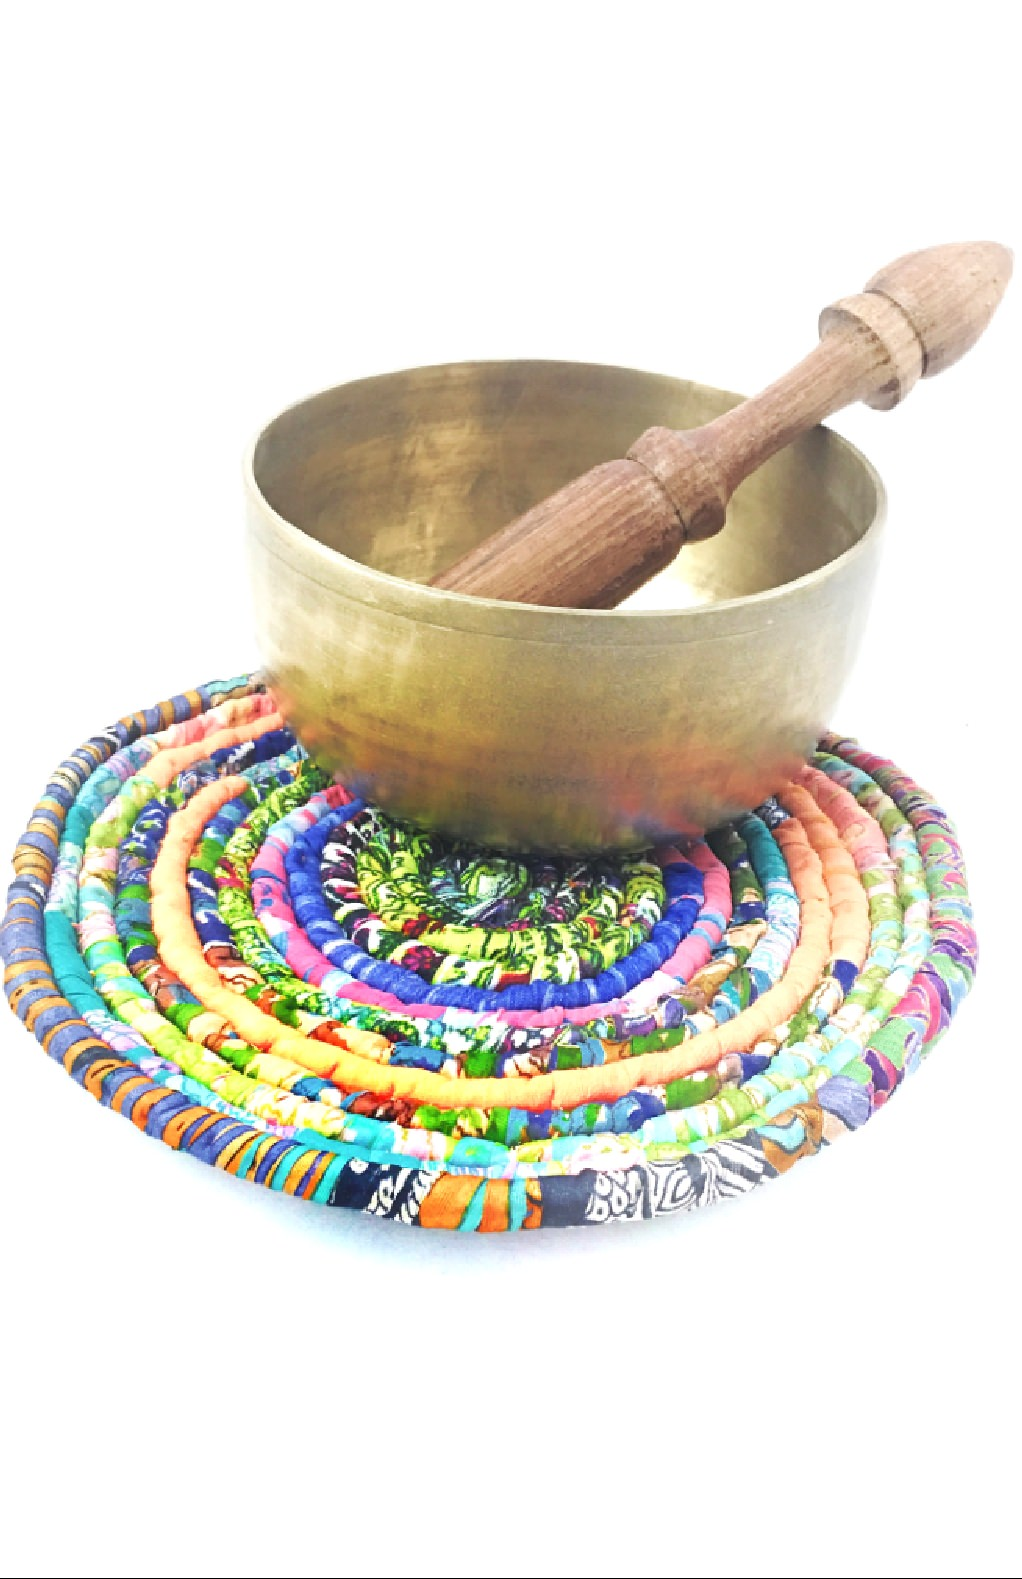 Fair Trade recycled silk coil trivet from Nepal, handcrafted